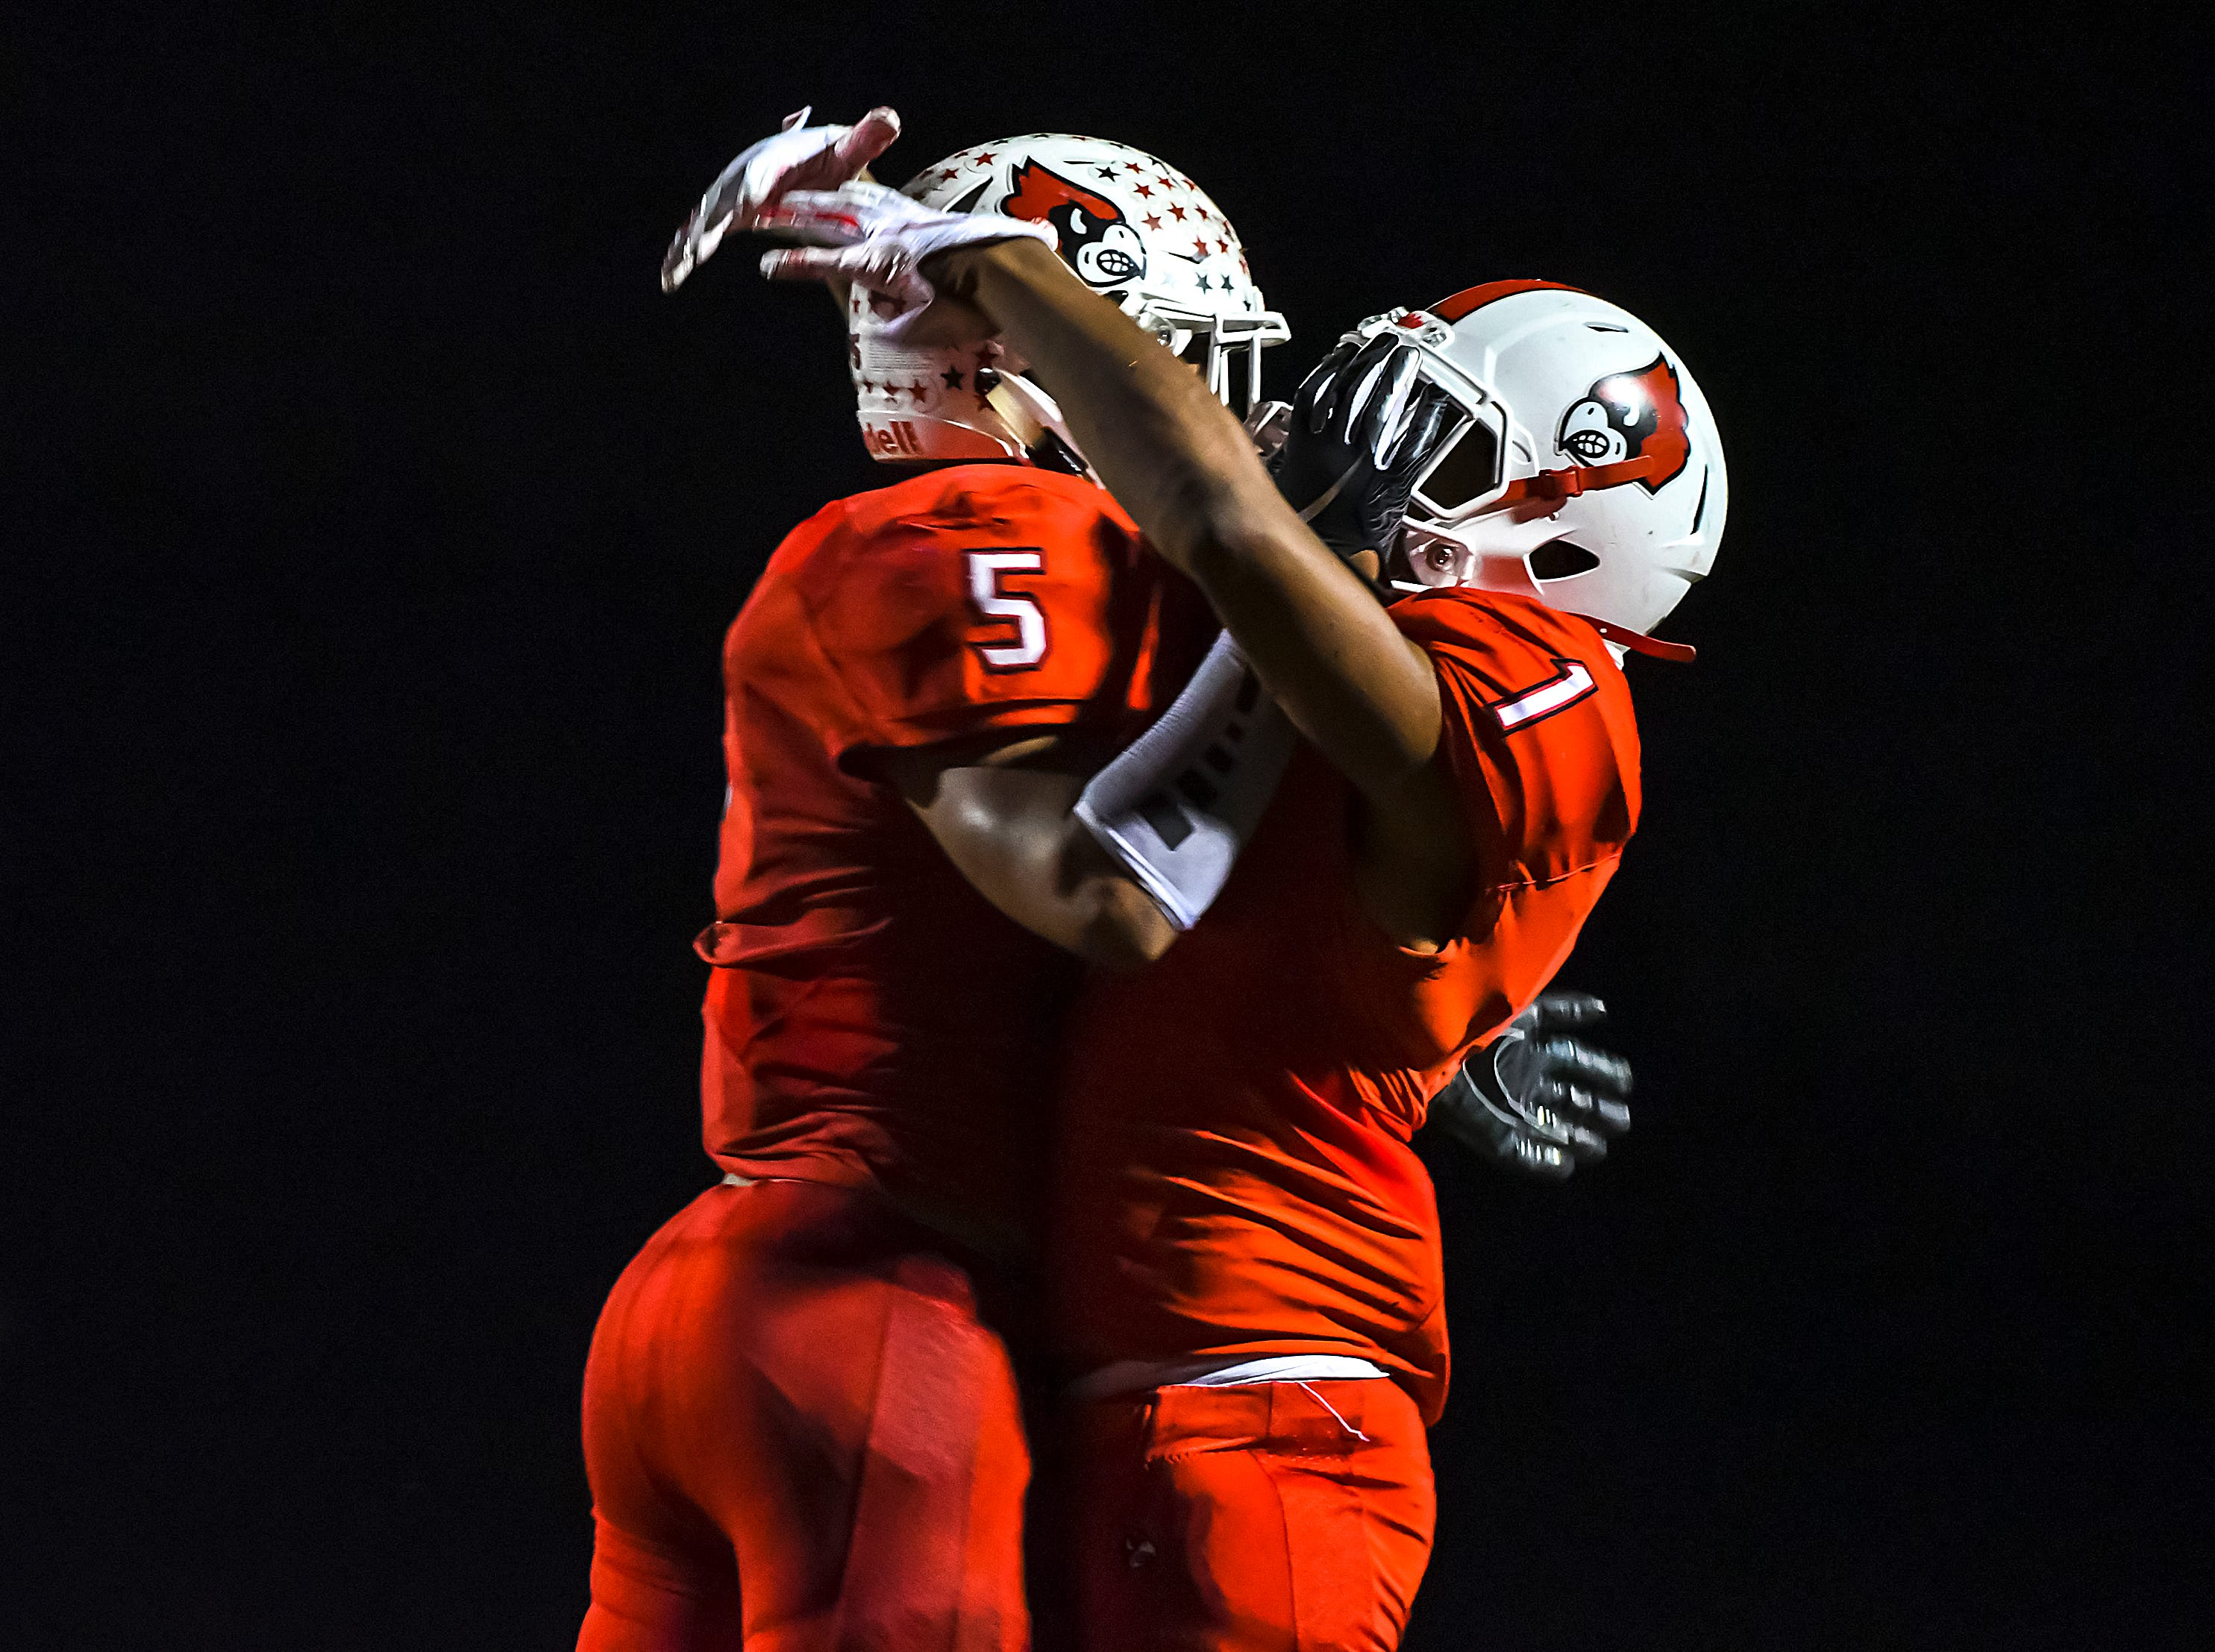 Ivan Pace Jr. (5) and Syncere Jones (1) of Colerain celebrate after a touchdown against St. X in the OHSAA DI Region 4 Playoffs at Colerain High School,  Friday Nov. 2, 2018